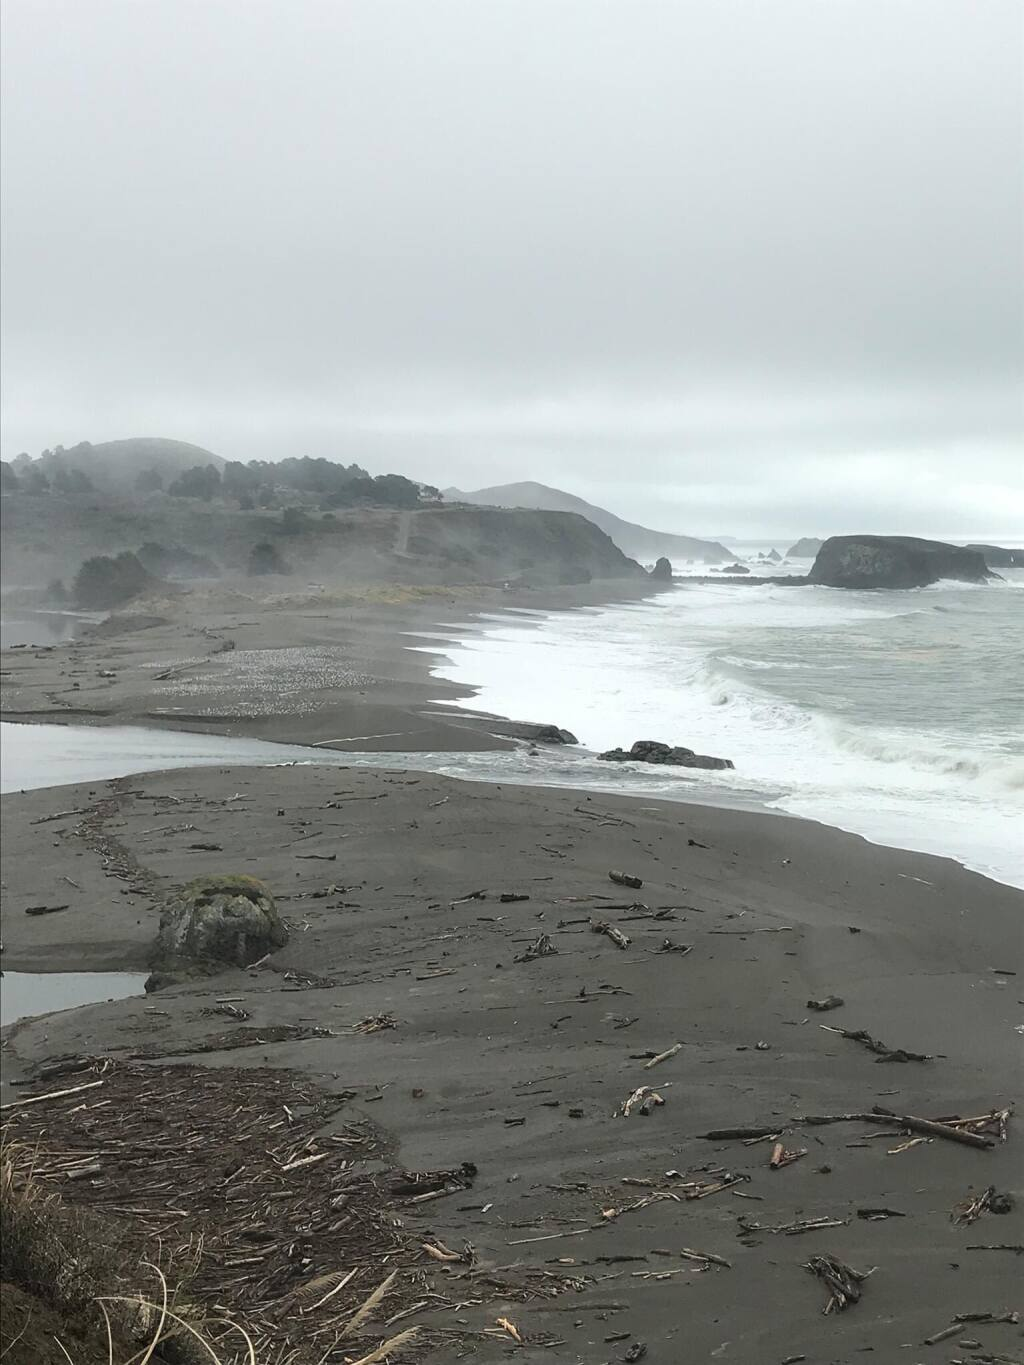 The mouth of the Russian River at the Sonoma Coast on Jan. 8, 2021, as water levels recede. (Sonoma County Sheriff's Office / Twitter)